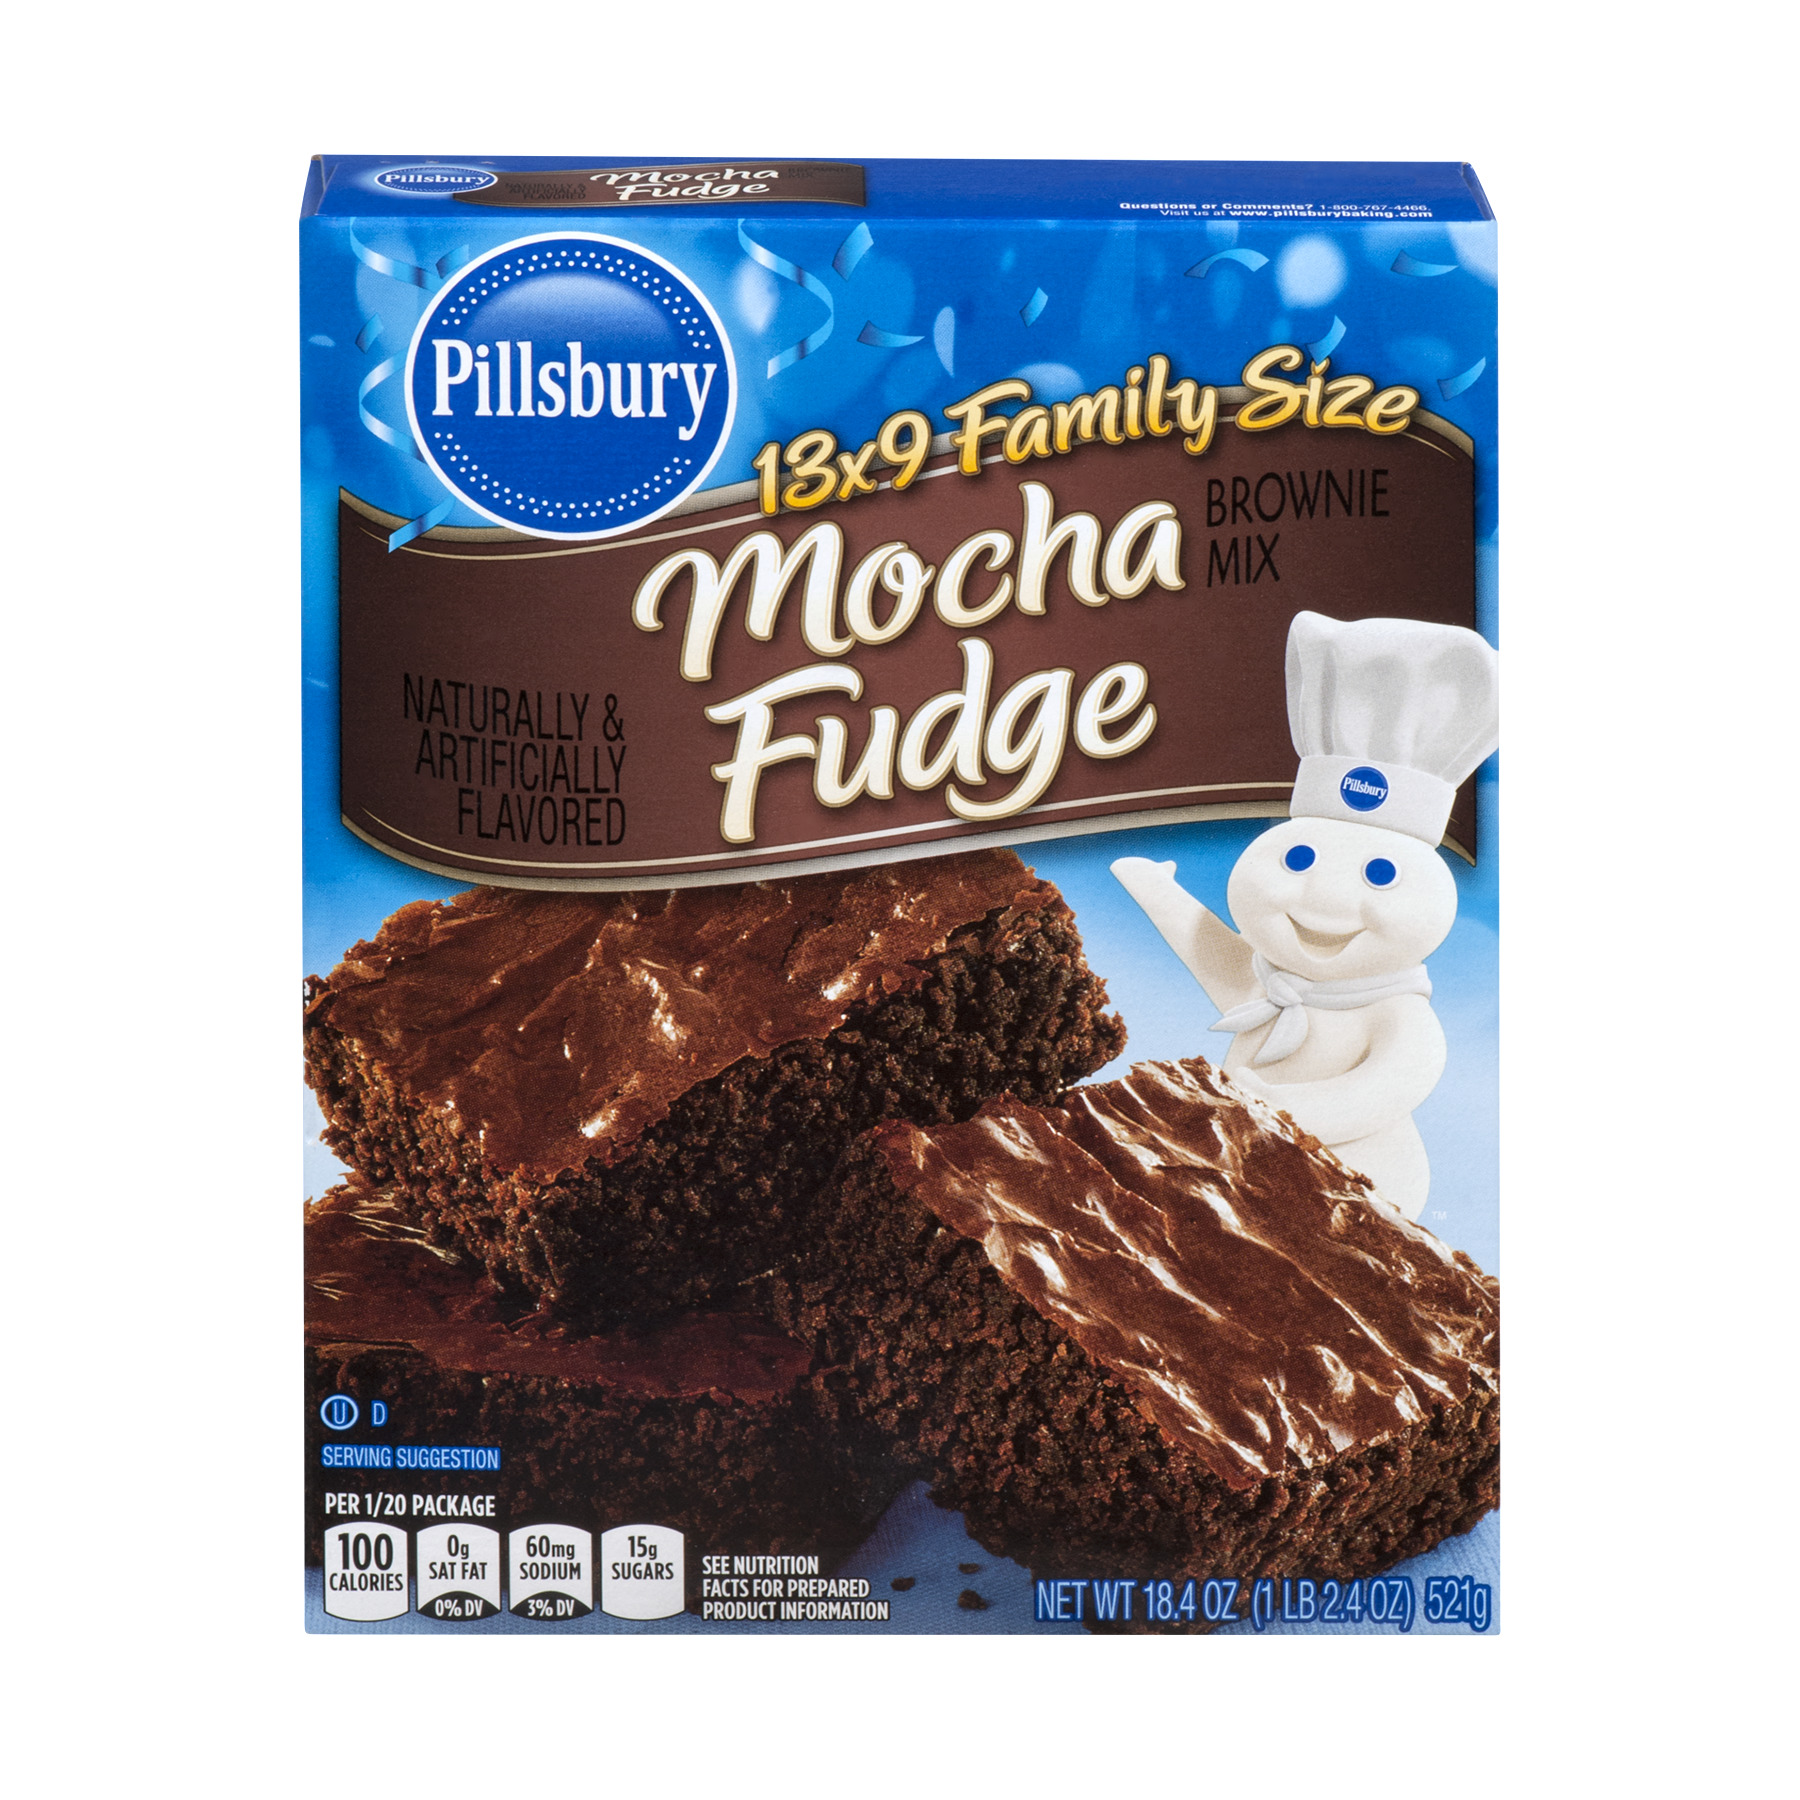 Pillsbury Brownie Mix Mocha Fudge Family Size, 18.4 OZ